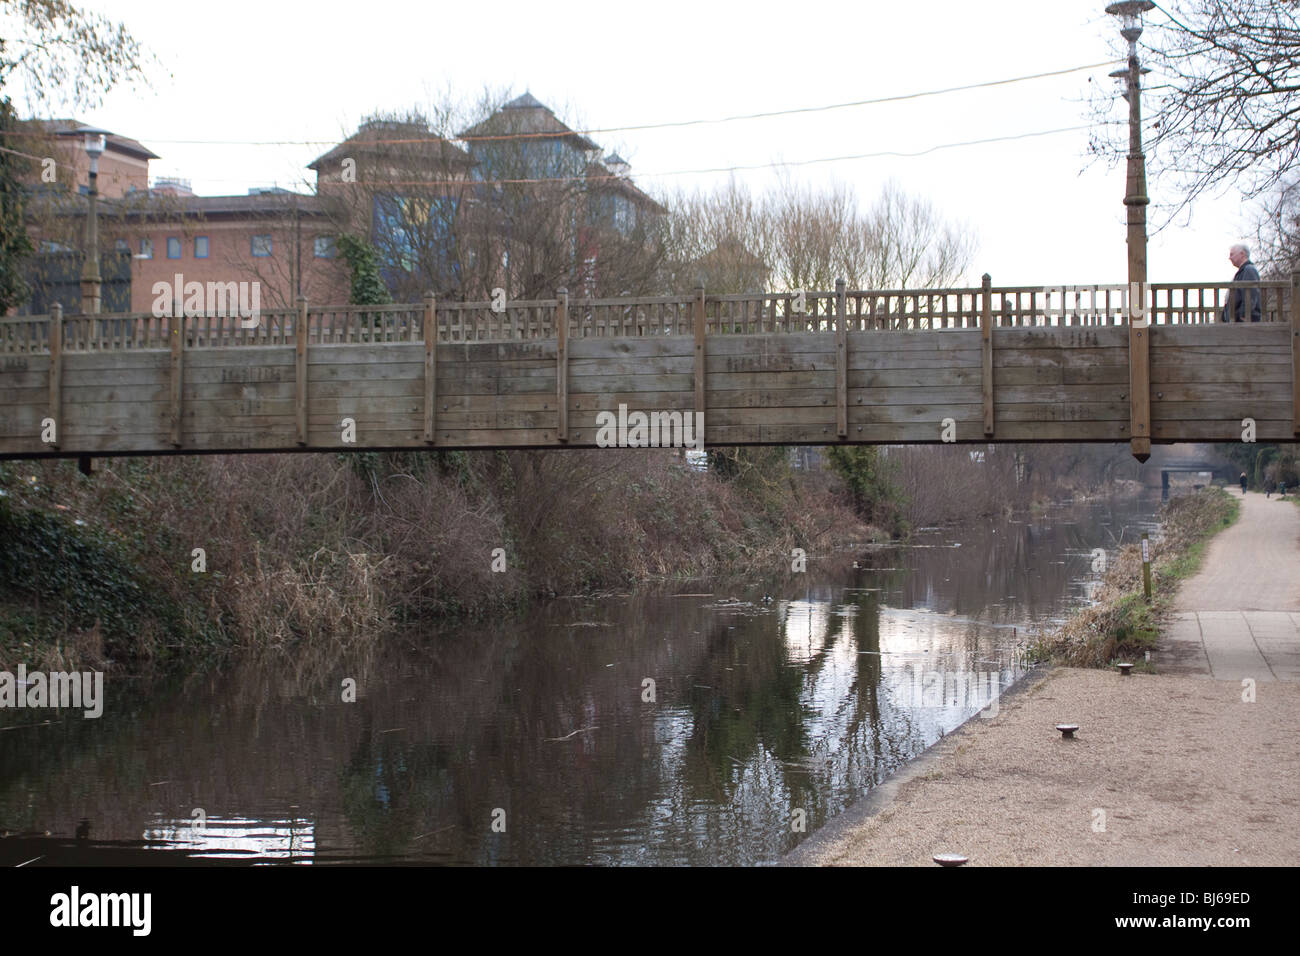 Basingstoke Canal in Woking - Stock Image